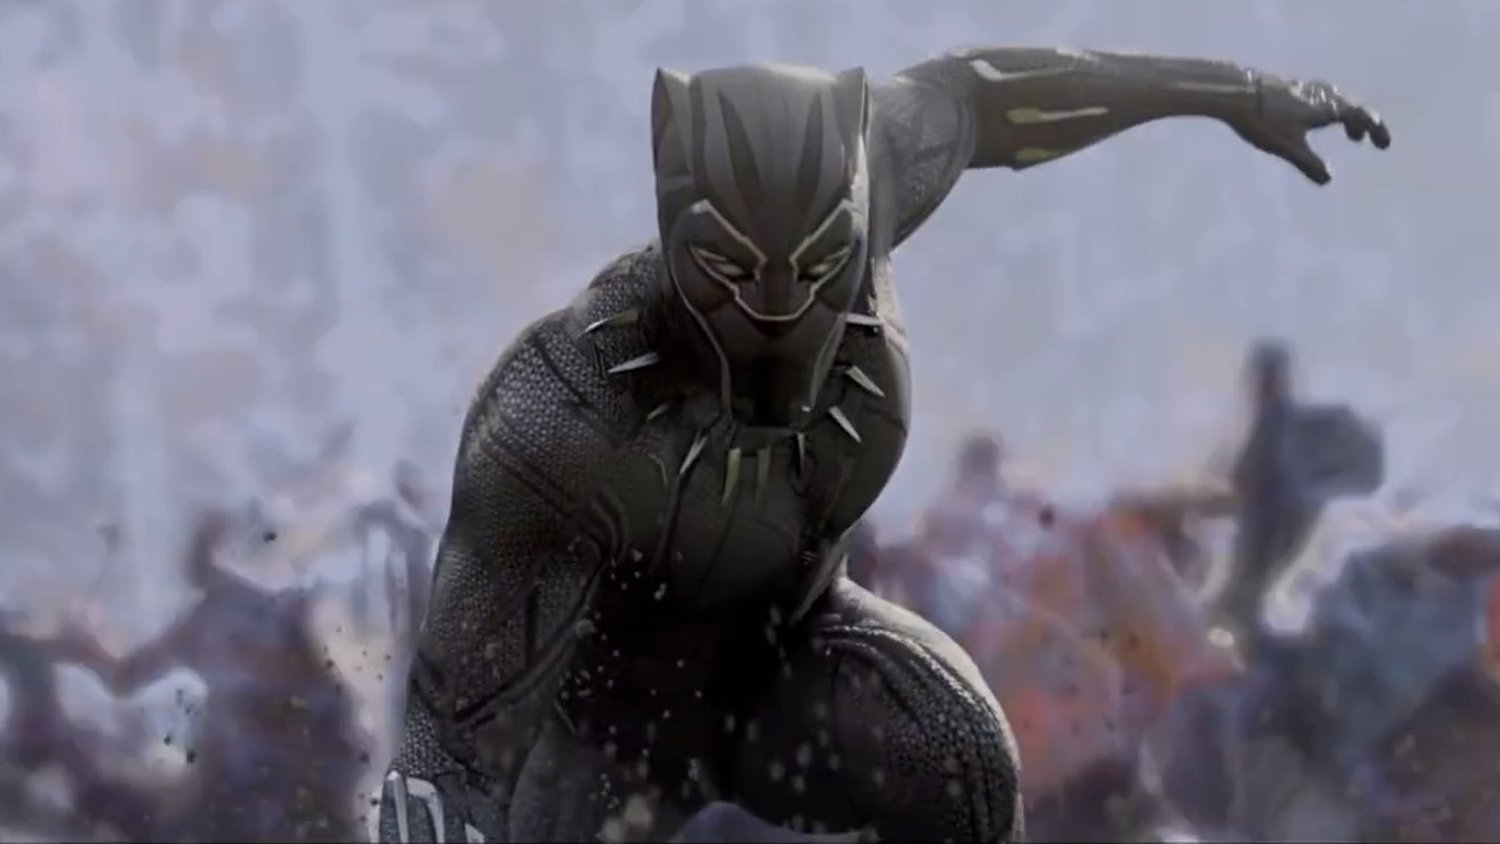 ryan-coogler-explains-why-a-major-mcu-character-wasnt-utilized-in-black-panther-and-how-the-ending-was-changed-social